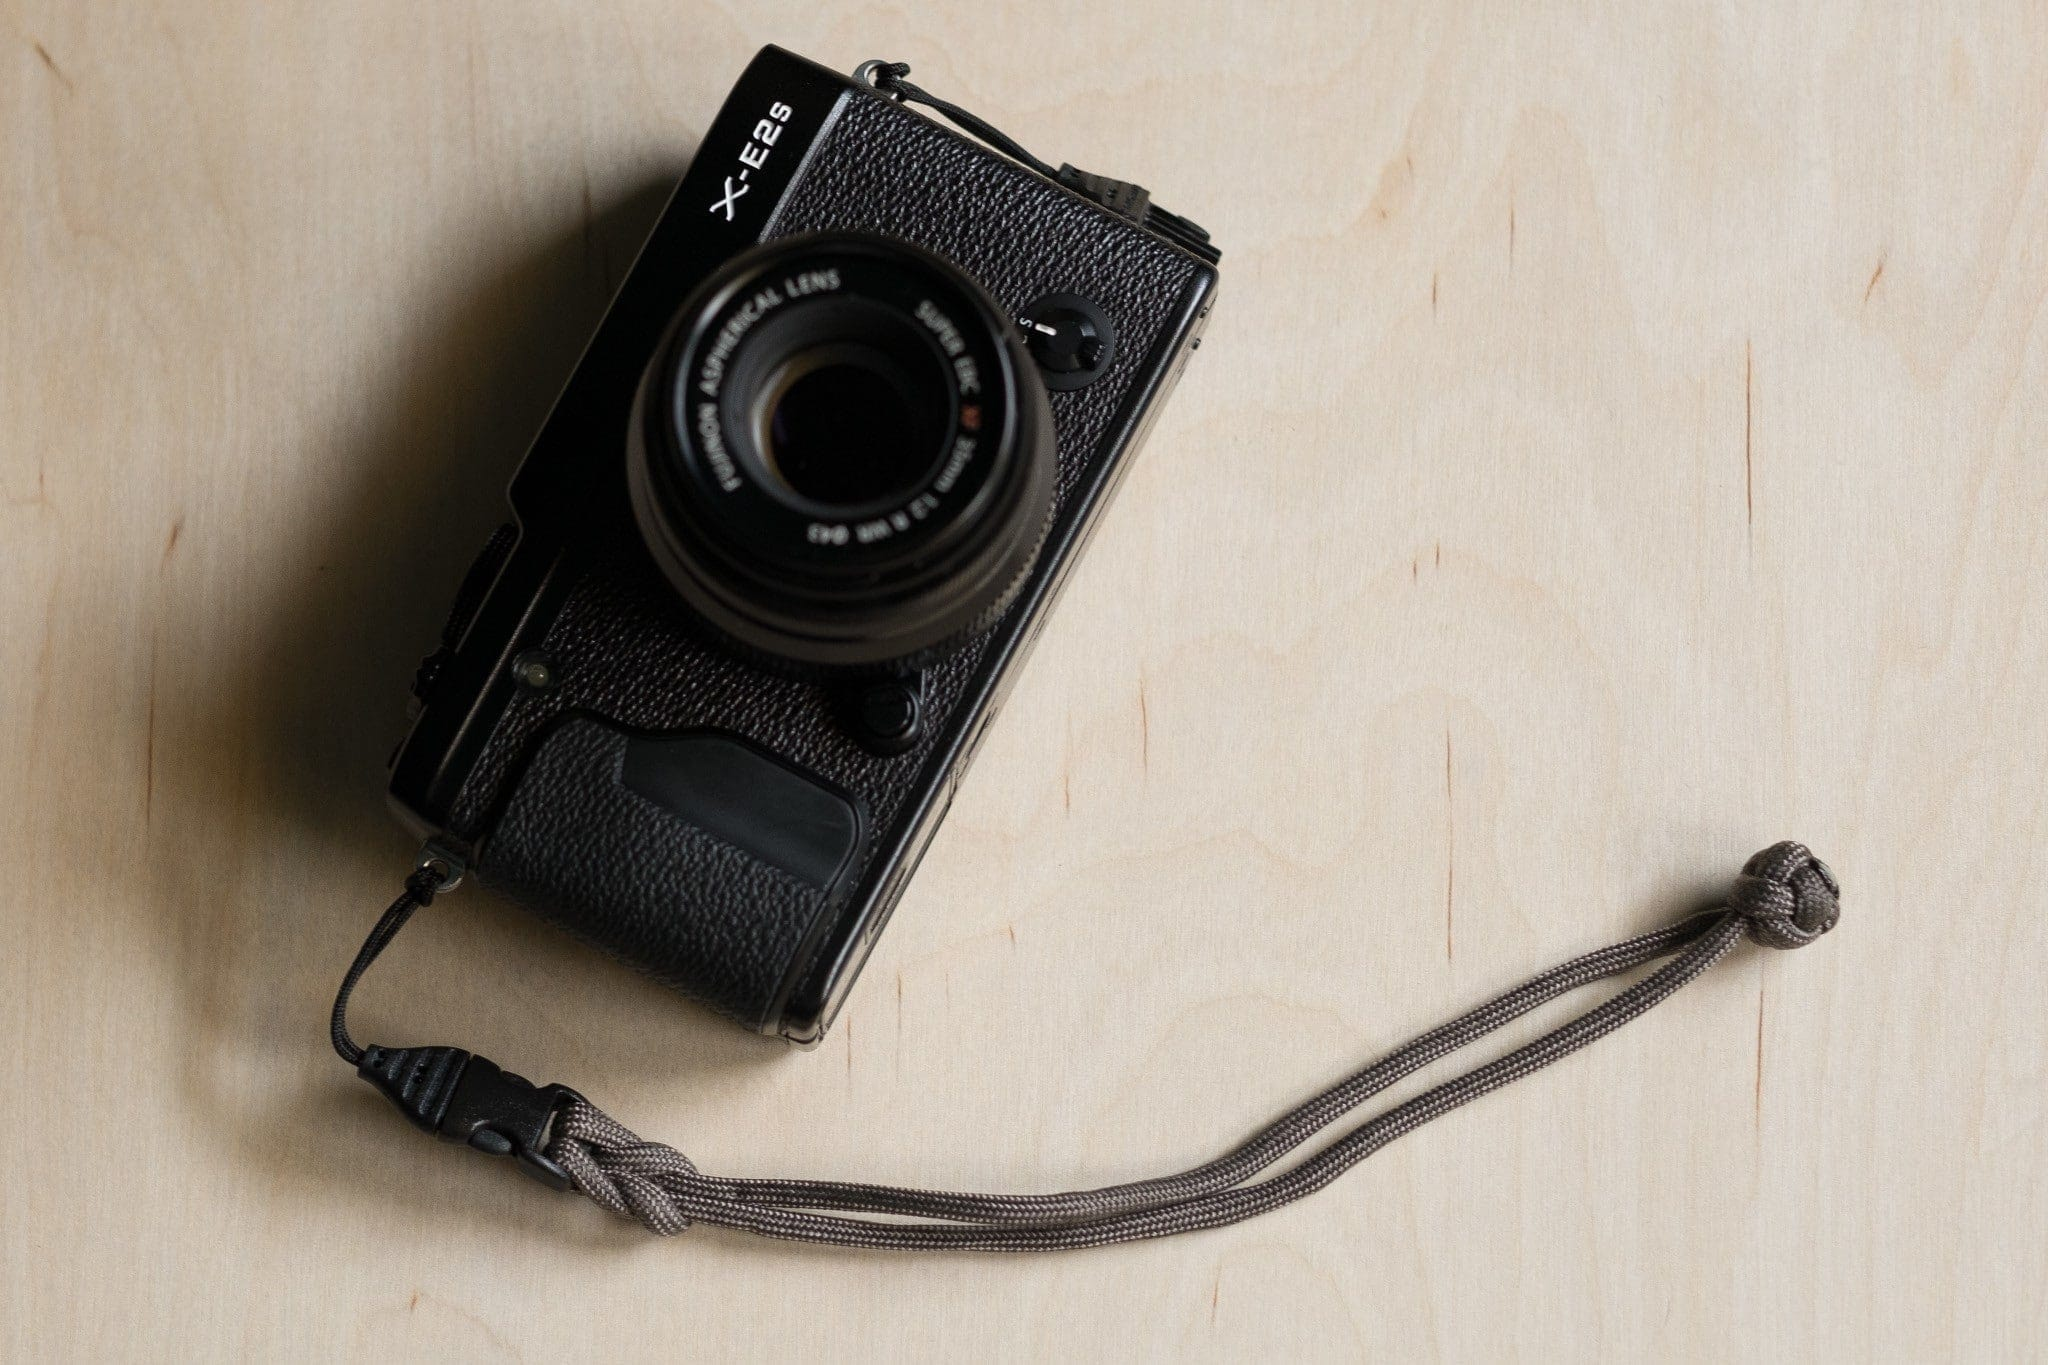 Diy Paracord Camera Wrist Strap With Instructions Simplr Camera Straps